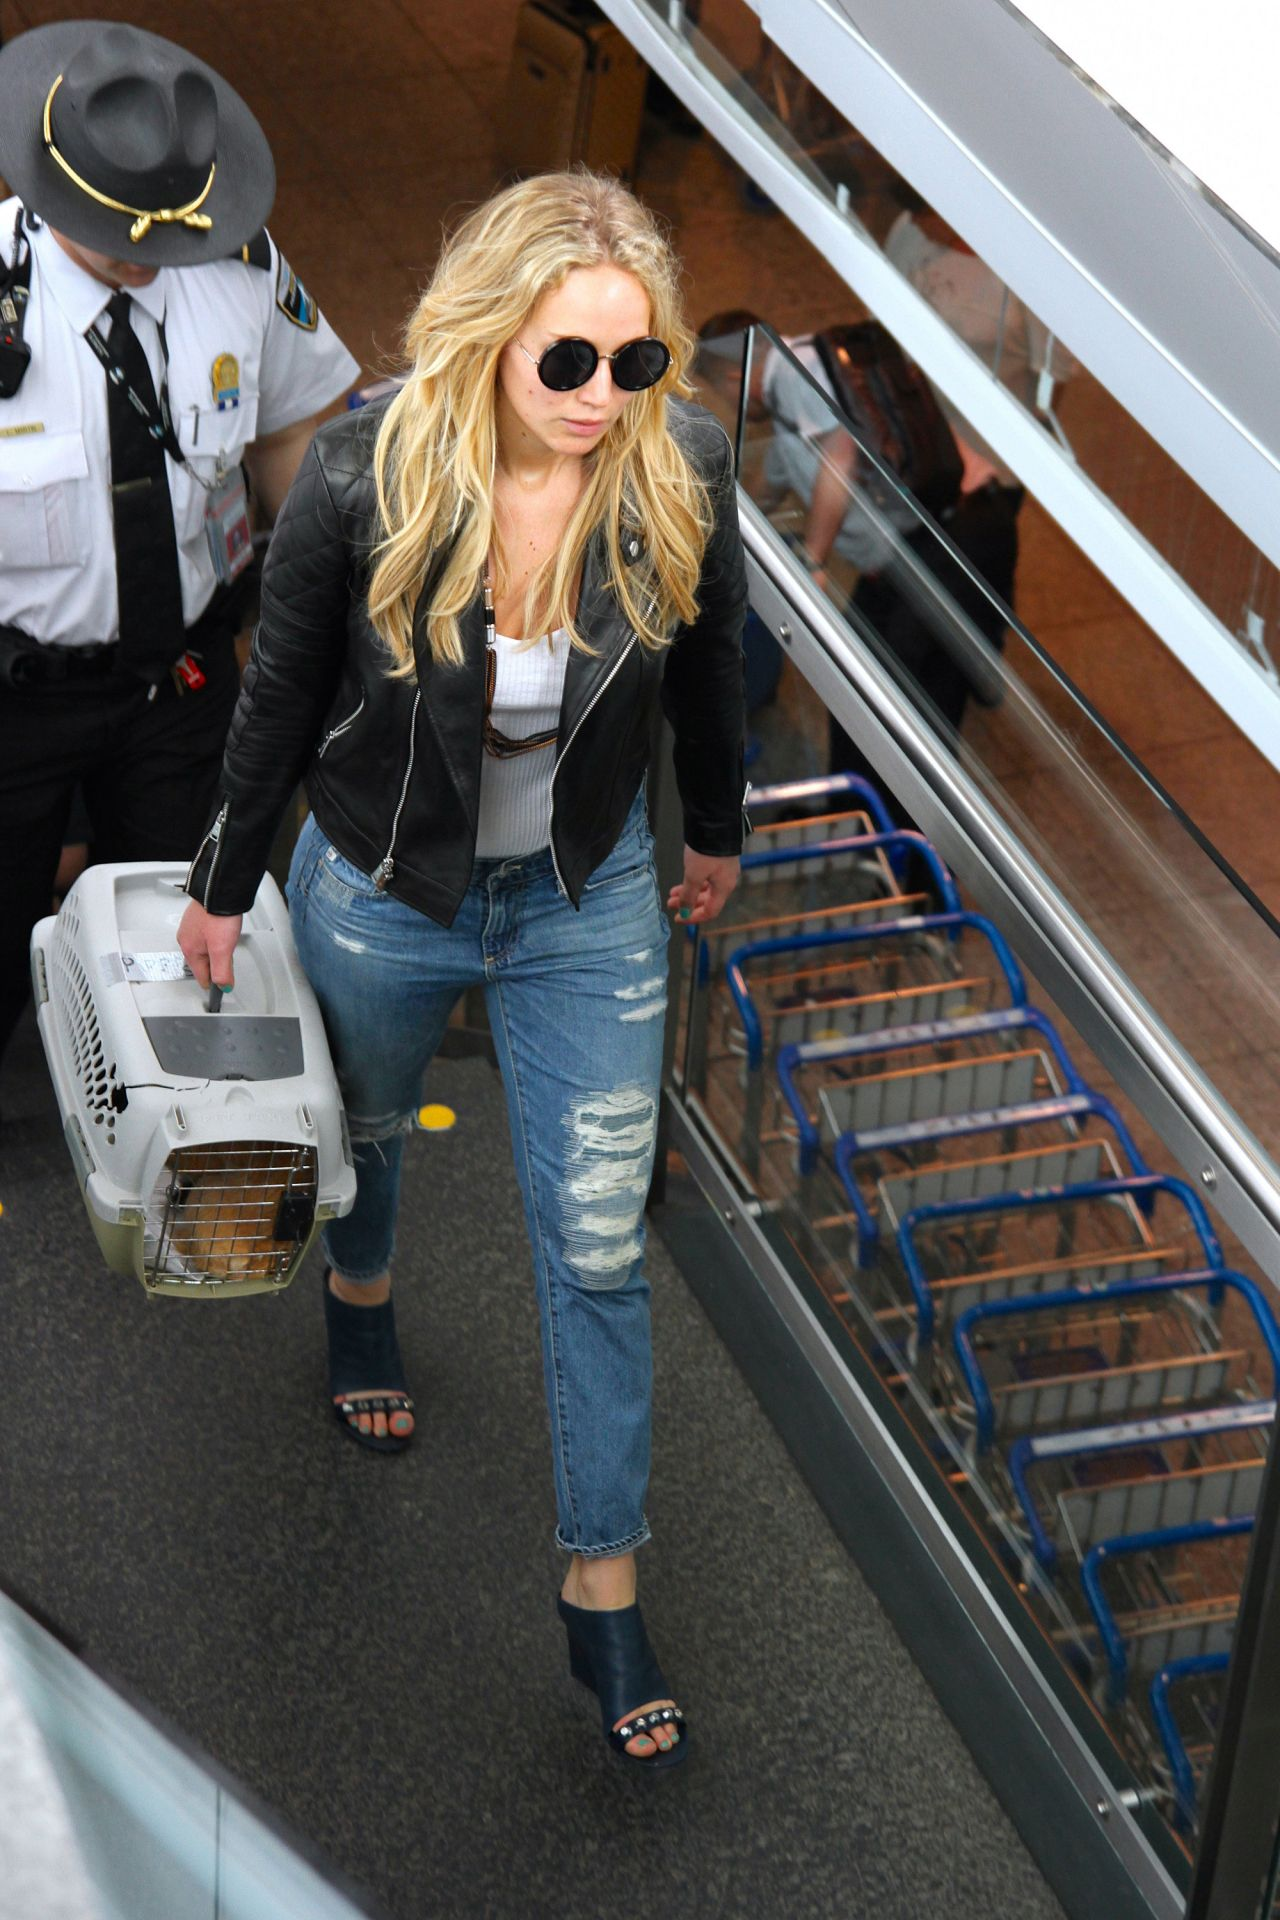 a96ac5c71a4 Jennifer Lawrence in Ripped Jeans at Trudeau International Airport in  Montreal, May 2015